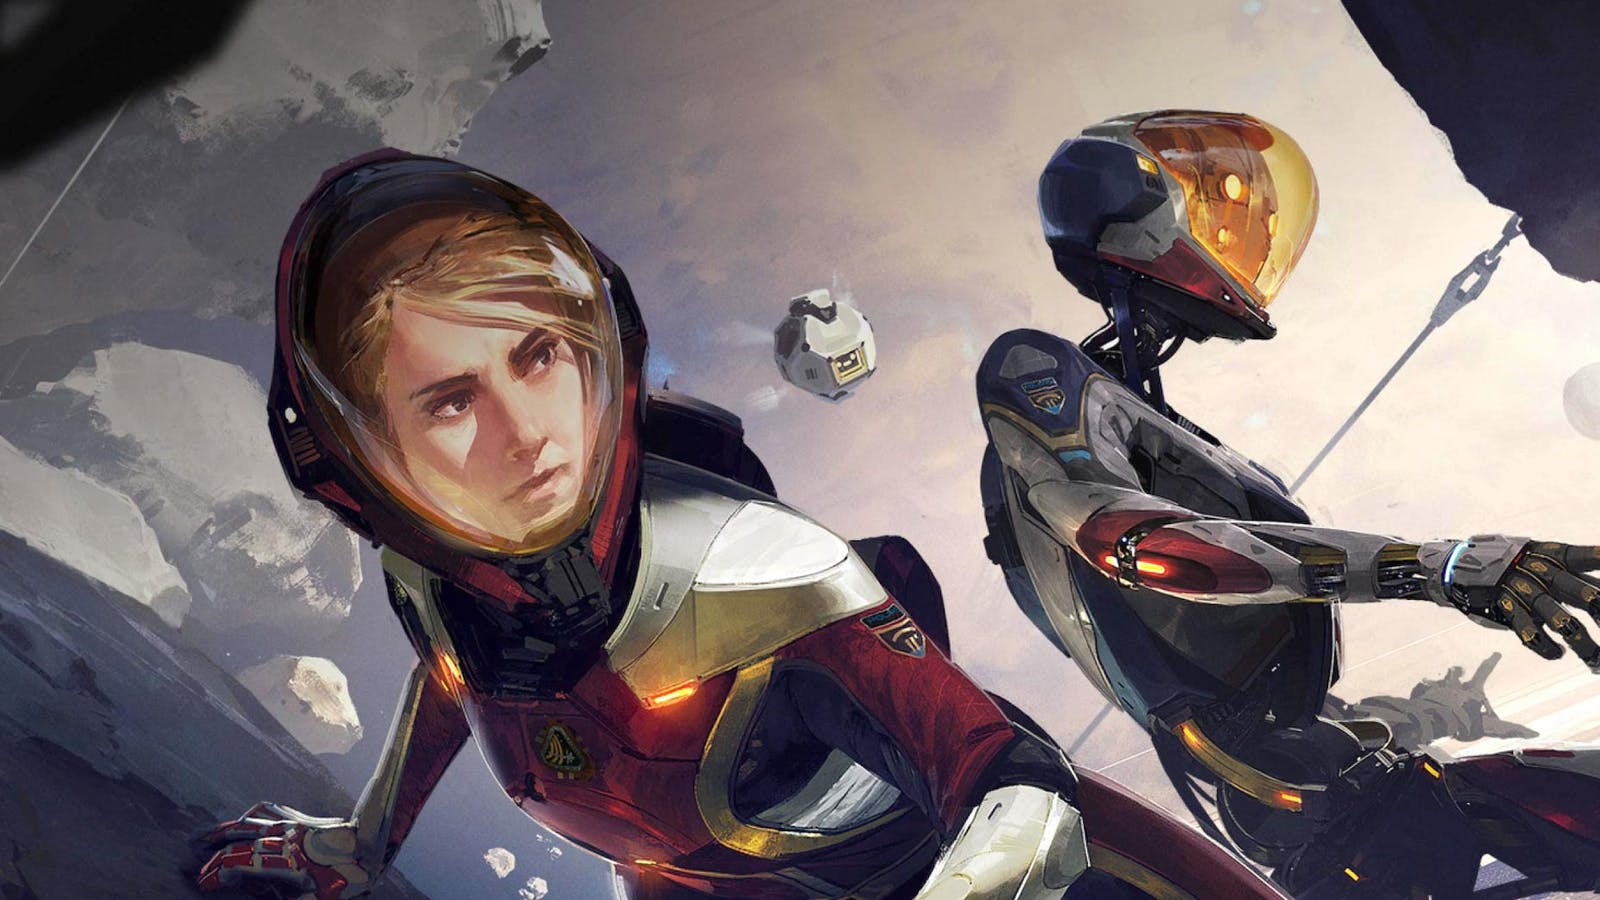 The lead characters of Facebook's Lone Echo VR games. Credit: Oculus Studios/Ready At Dawn